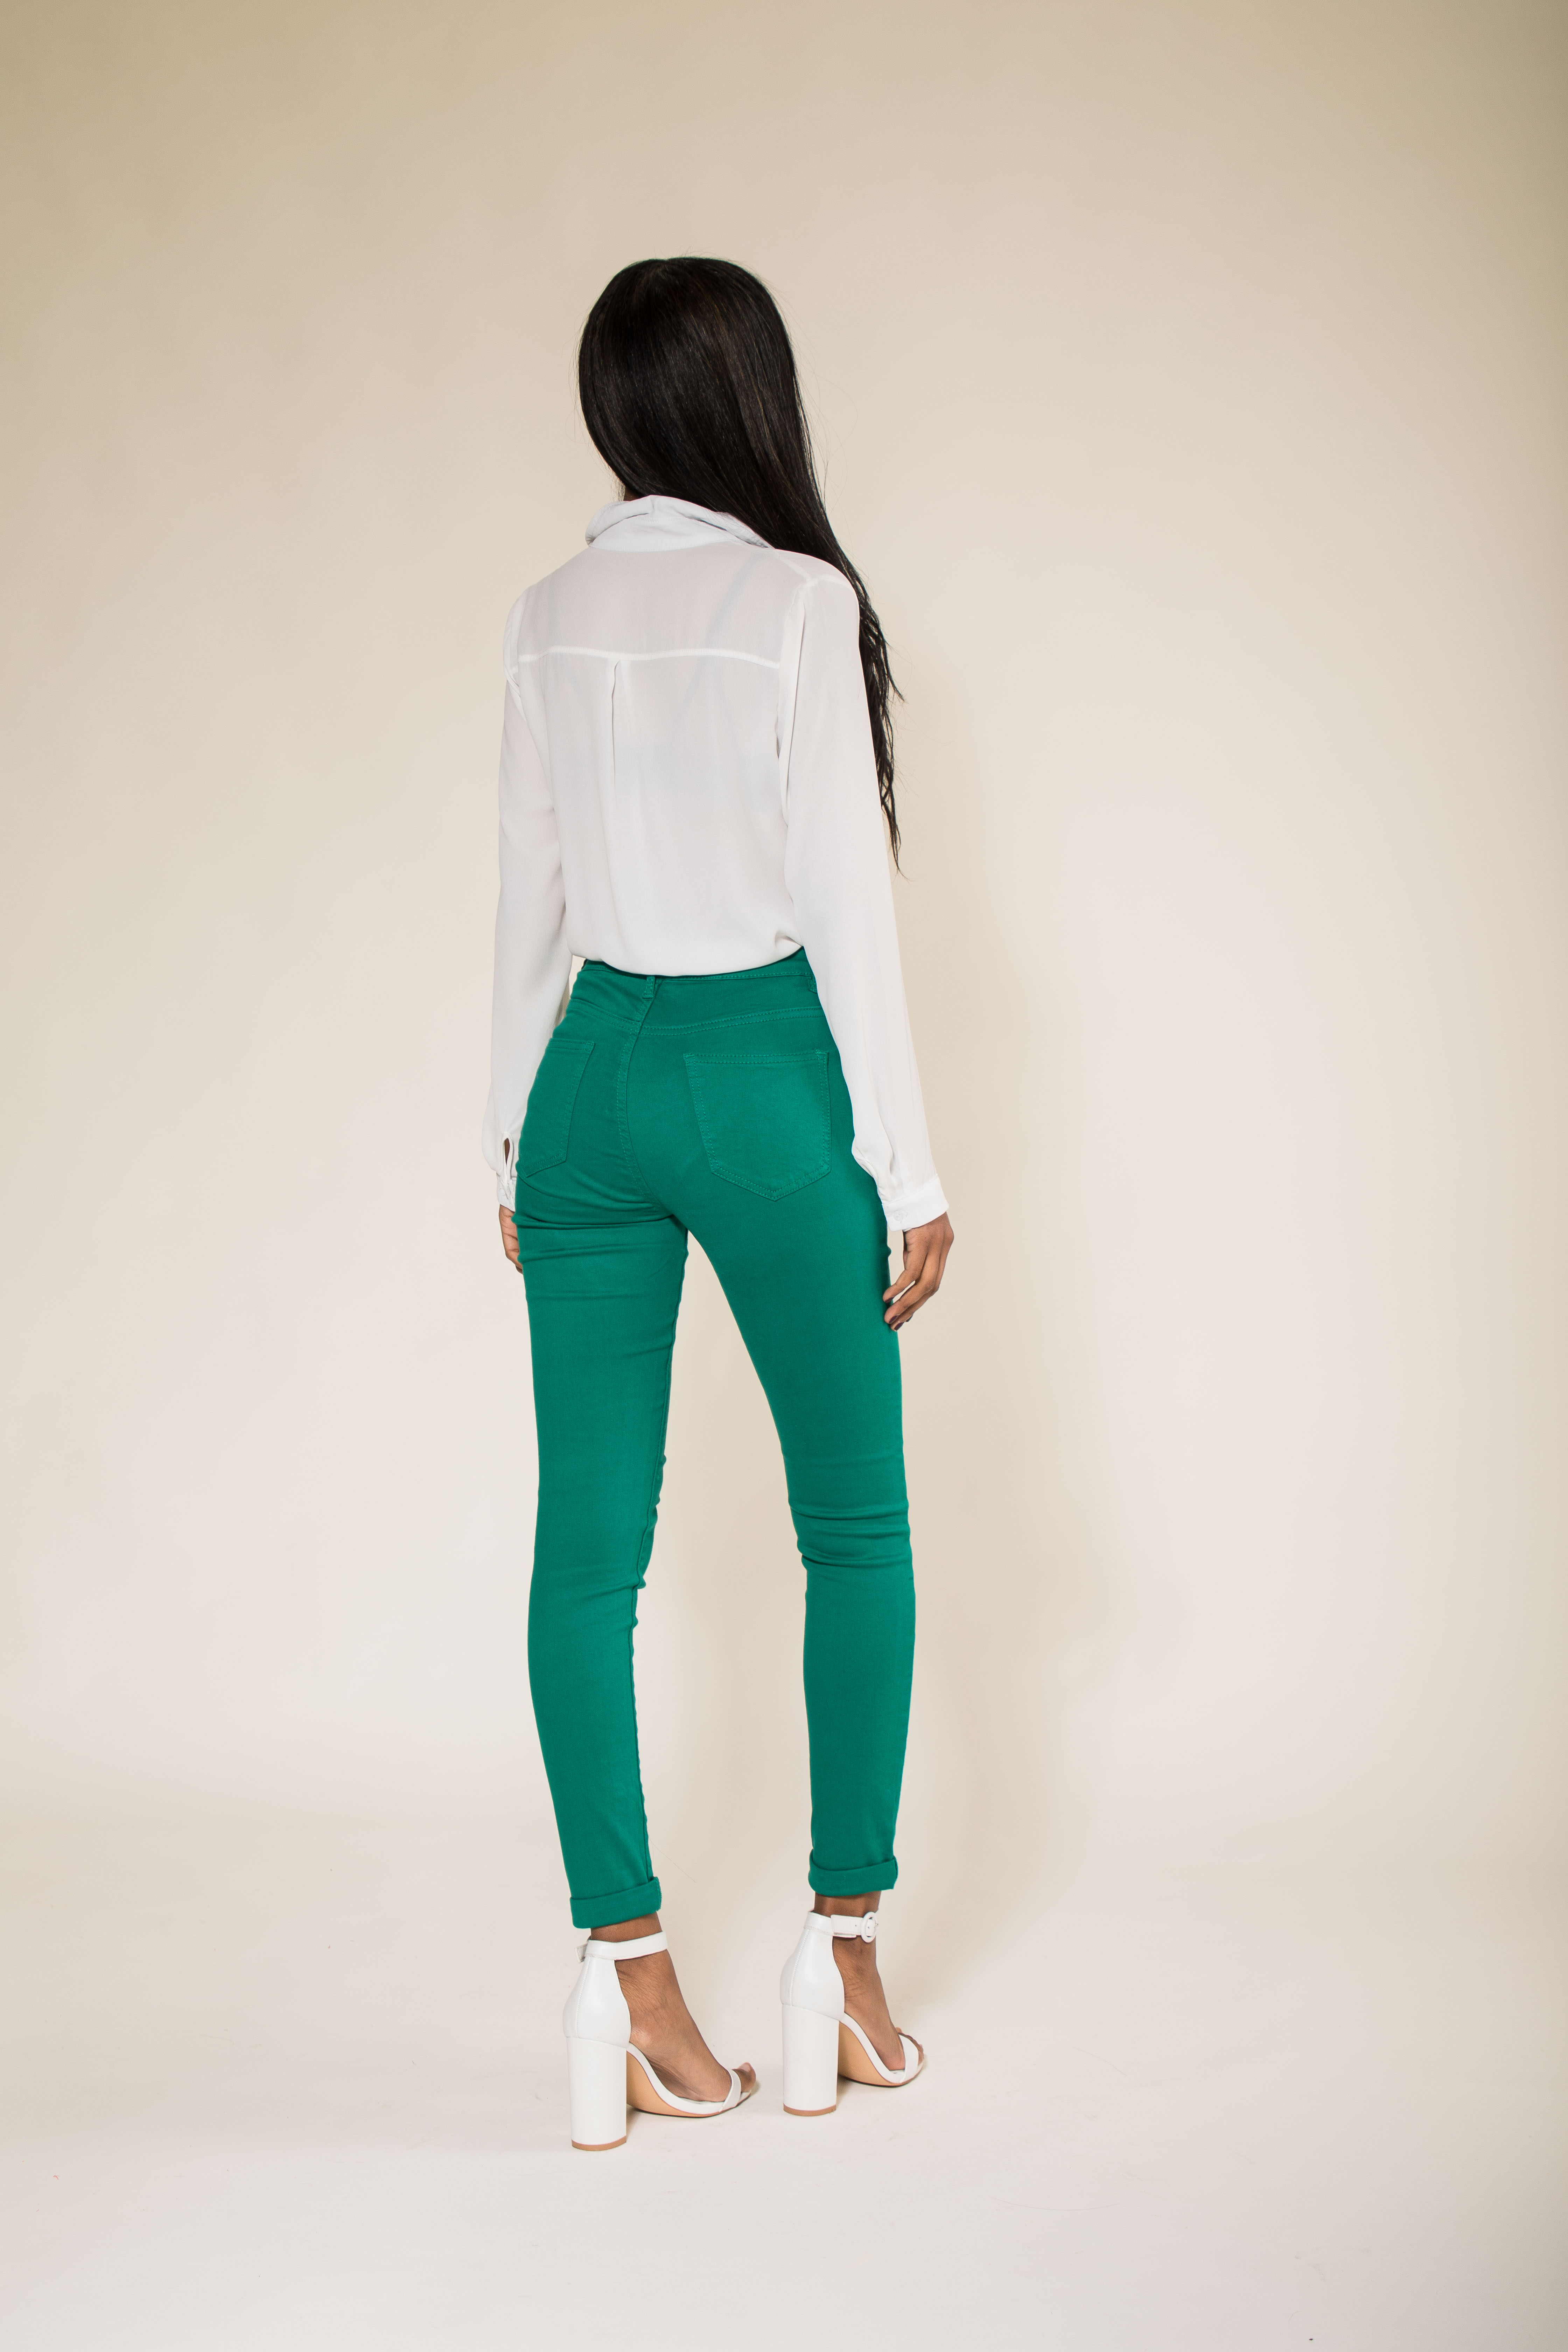 Women-High-Waisted-Jeans-Ladies-Coloured-Stretchy-jeggings-Pants-Size-6-14 thumbnail 22